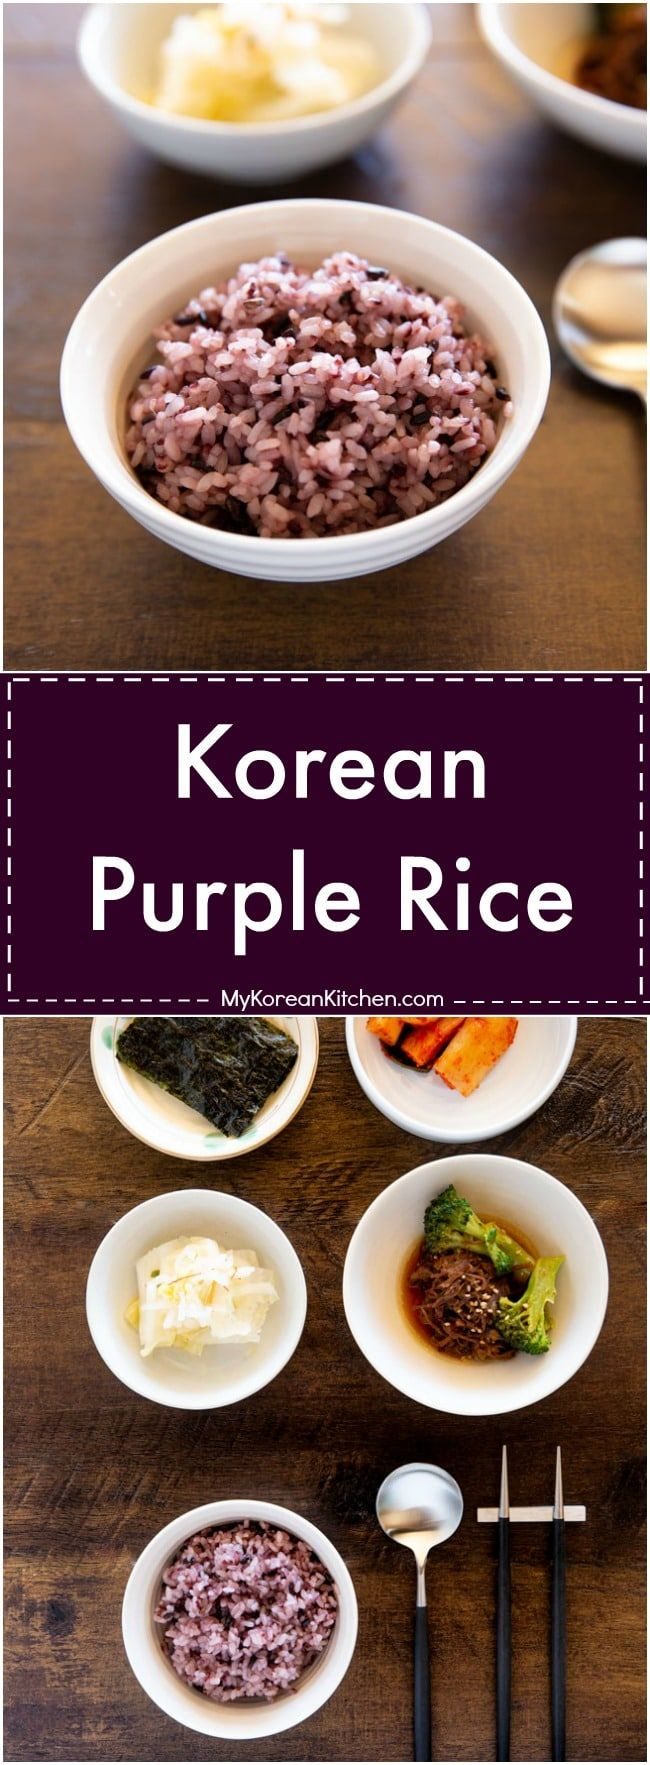 Korean Purple Rice